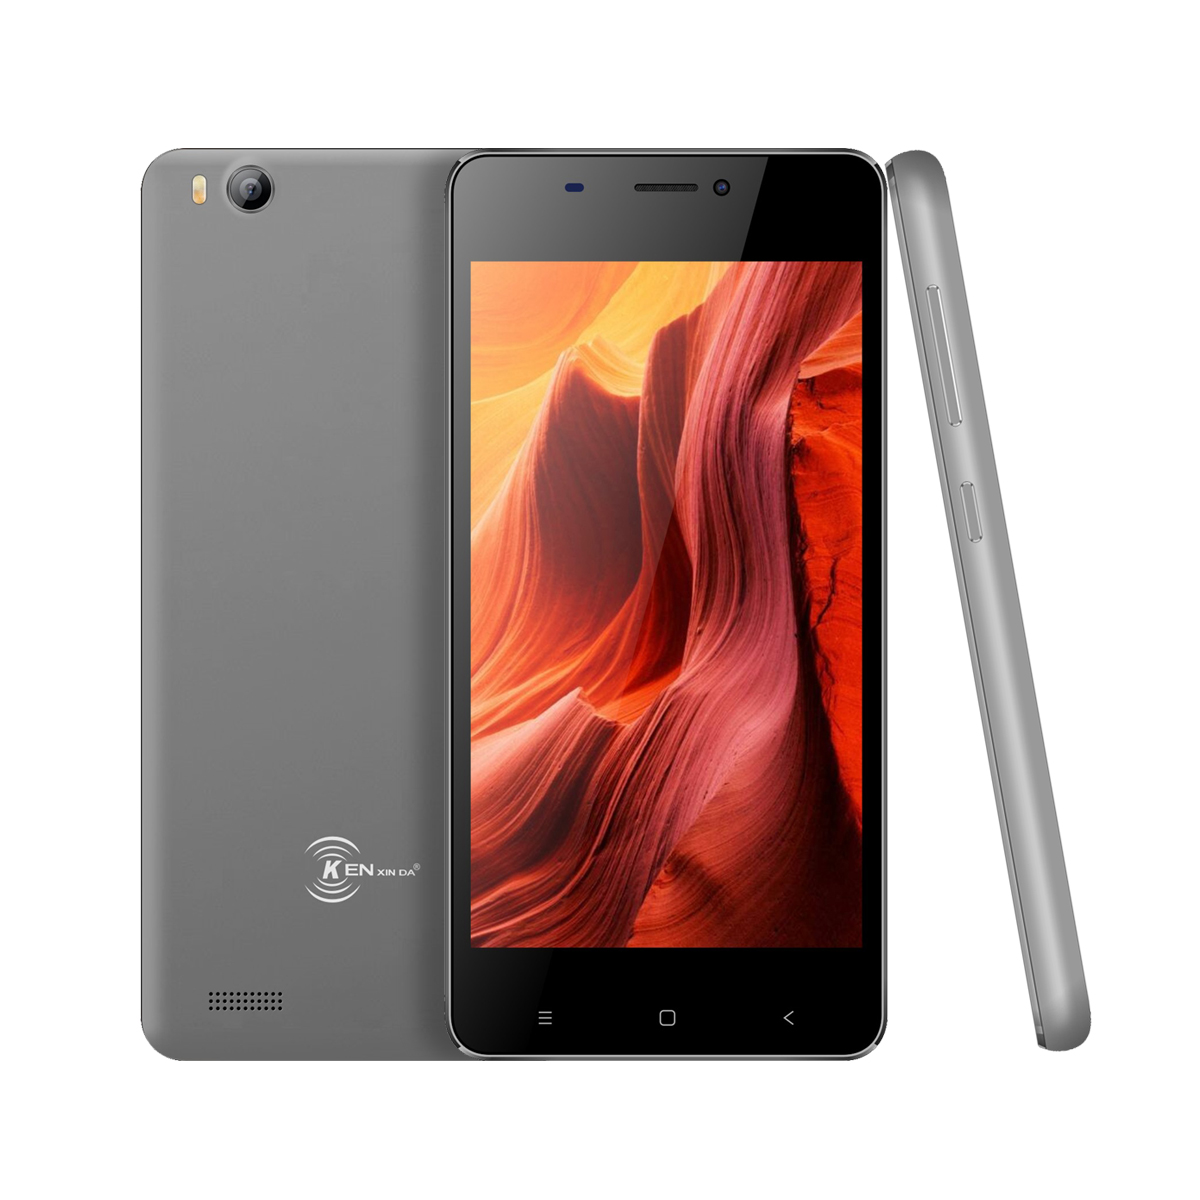 Wholesale V6 3G Smartphone - Android 6.0 OS, Quad Core CPU4.5-Inch Display, 1700mAh Battery, Front & Rear Camera (Gray)